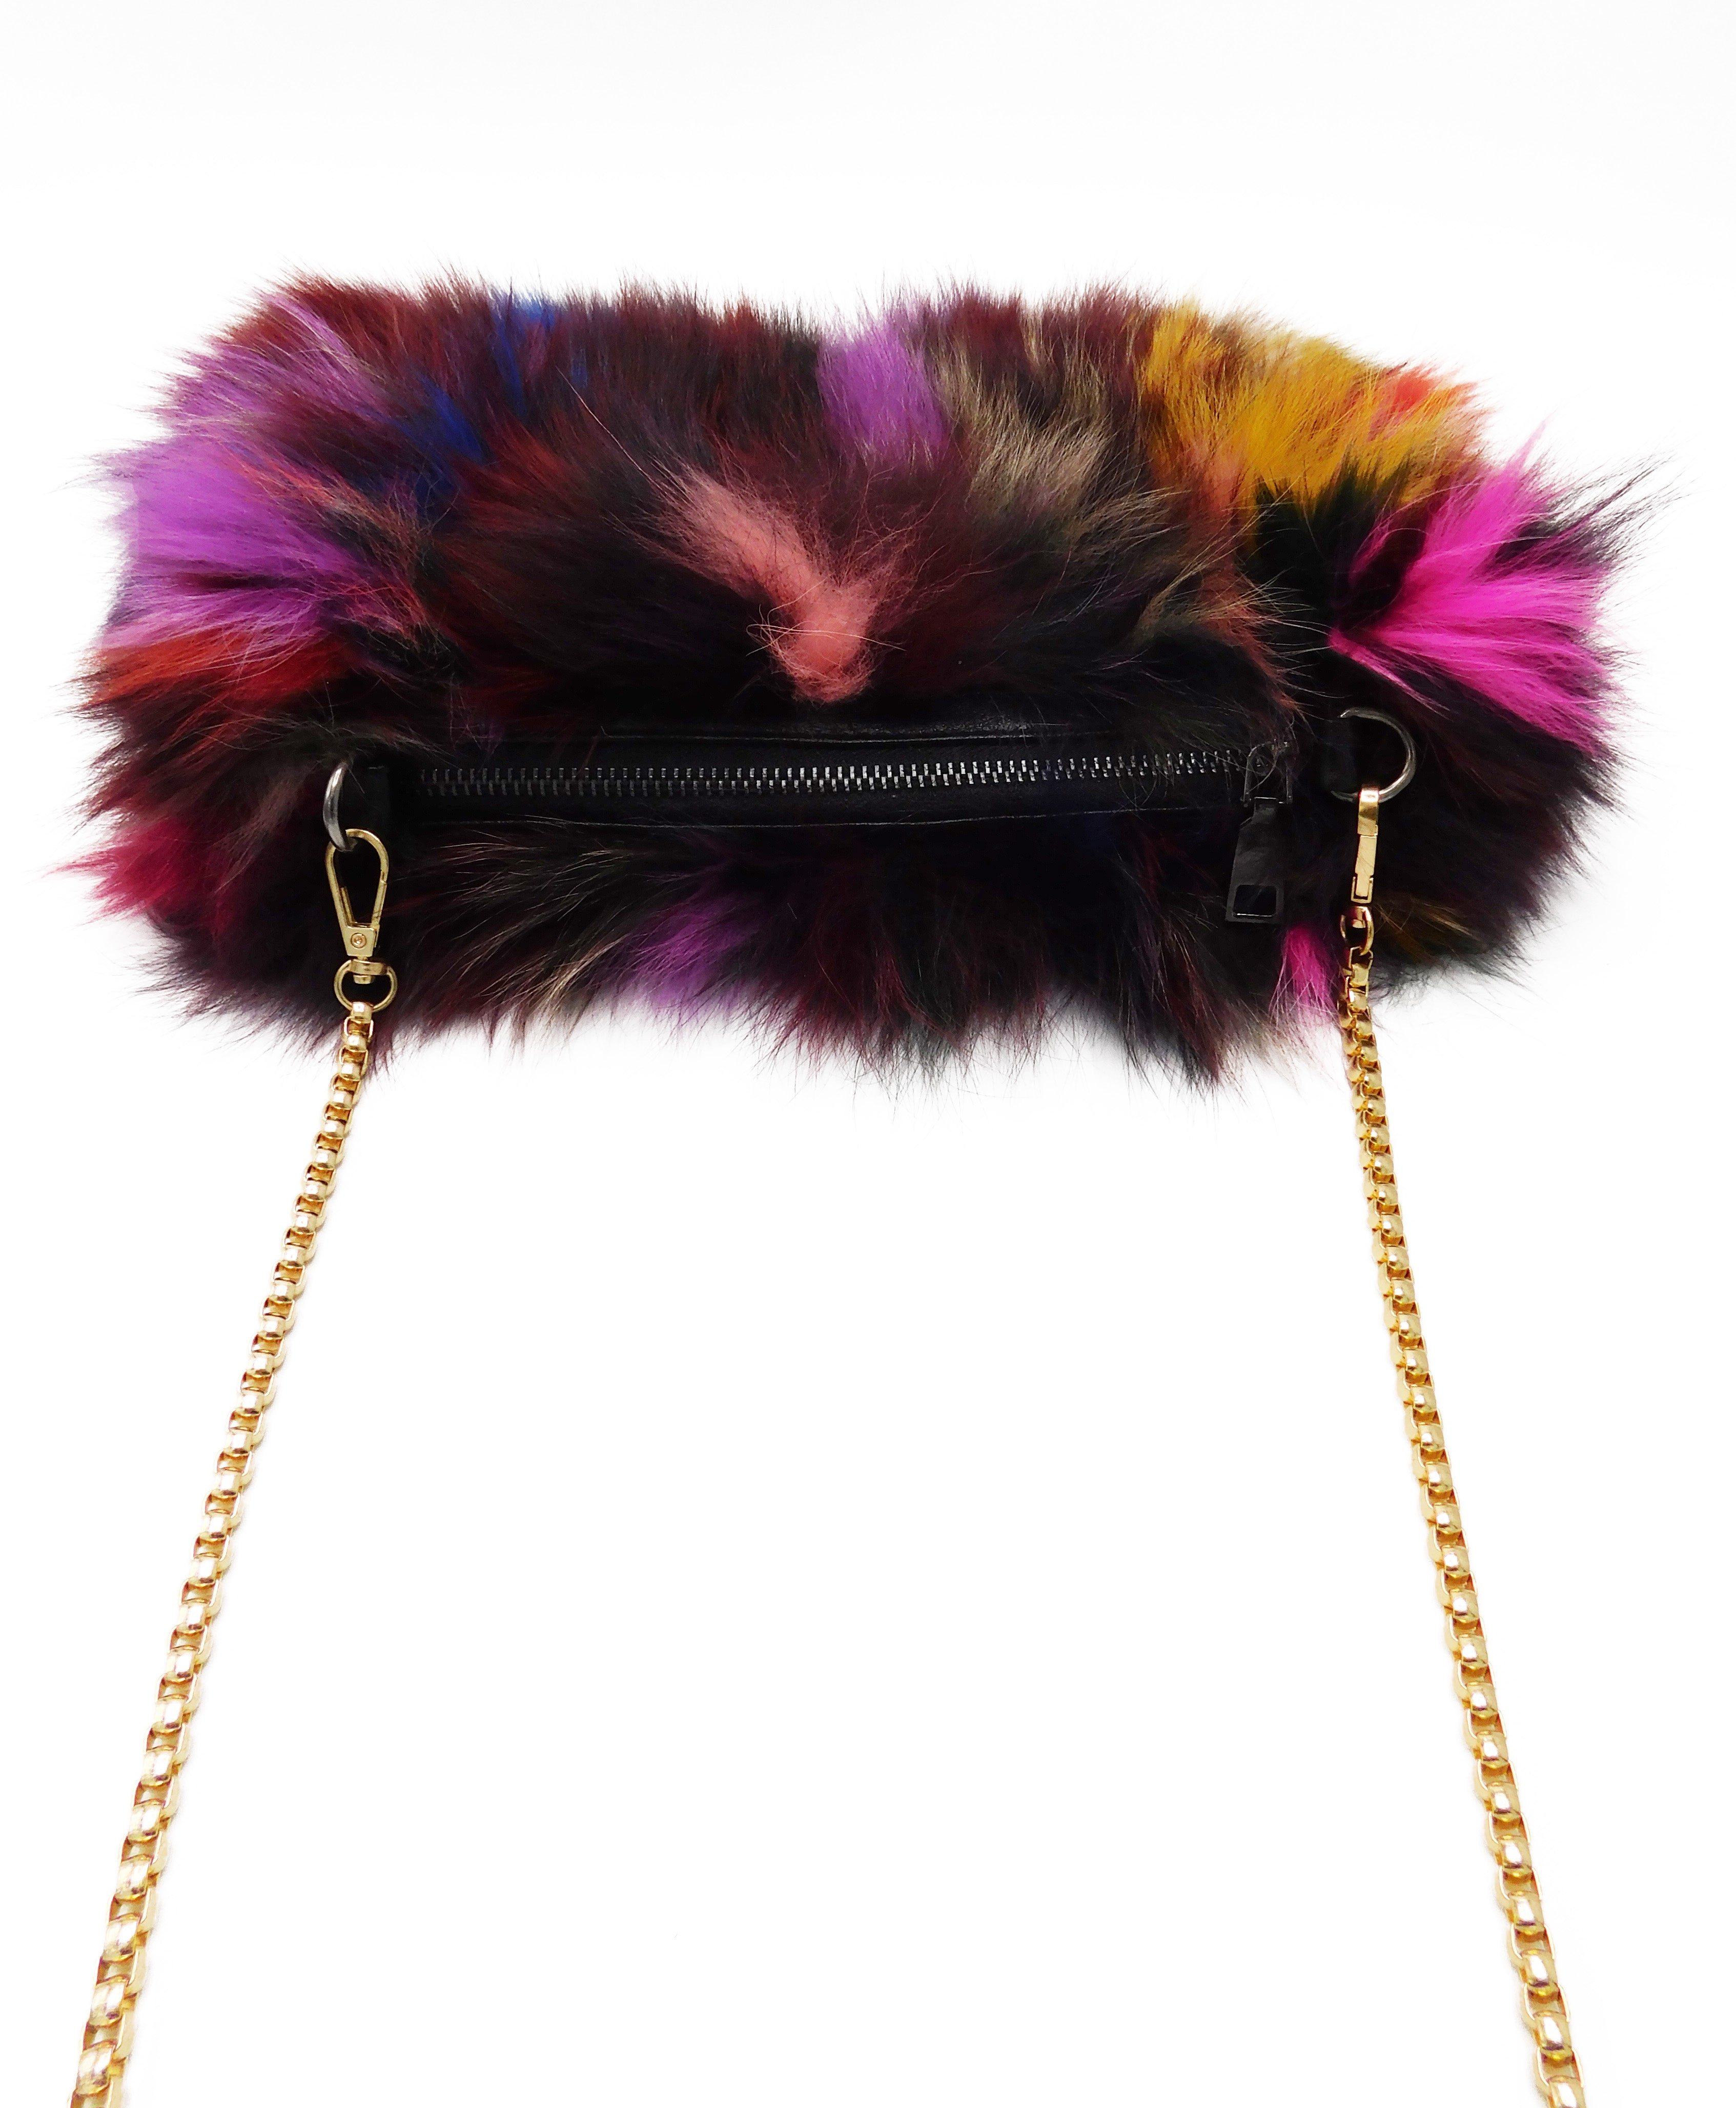 Multicolor Fox Fur Muff Handbag with Gold Chain - paulamarie